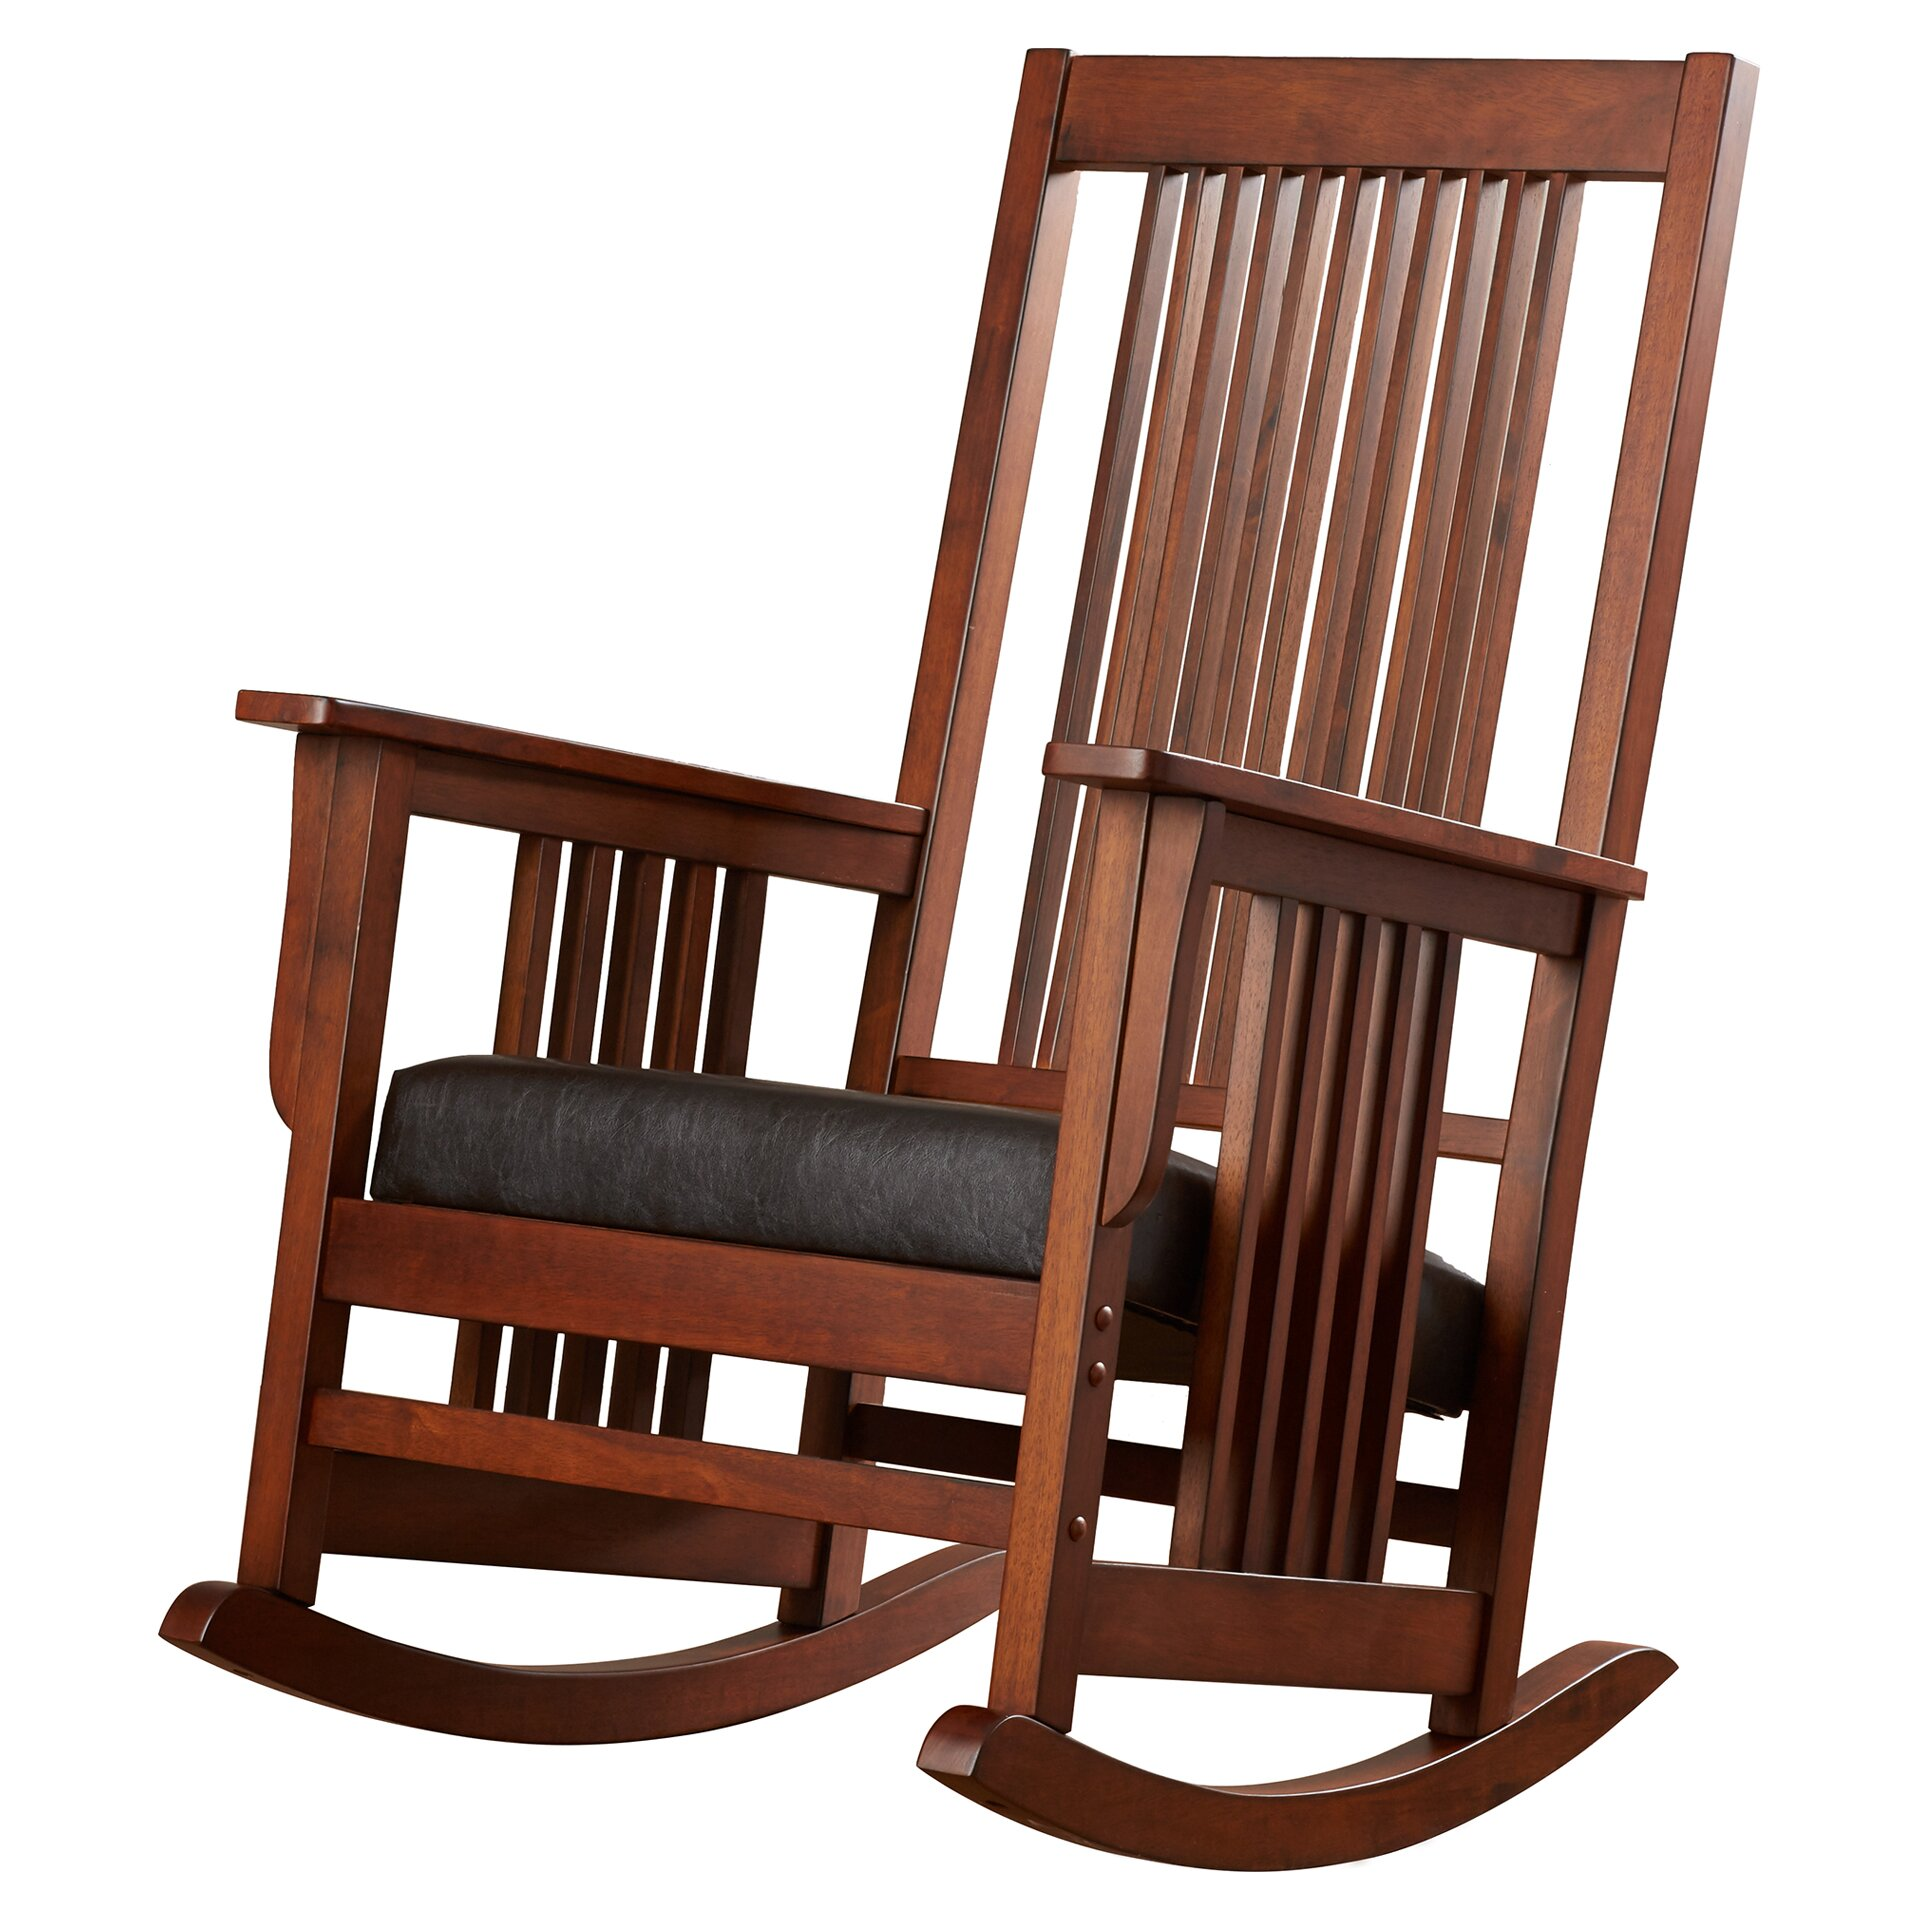 Darby home co matilda rocking chair reviews wayfair - Rocking chair but ...